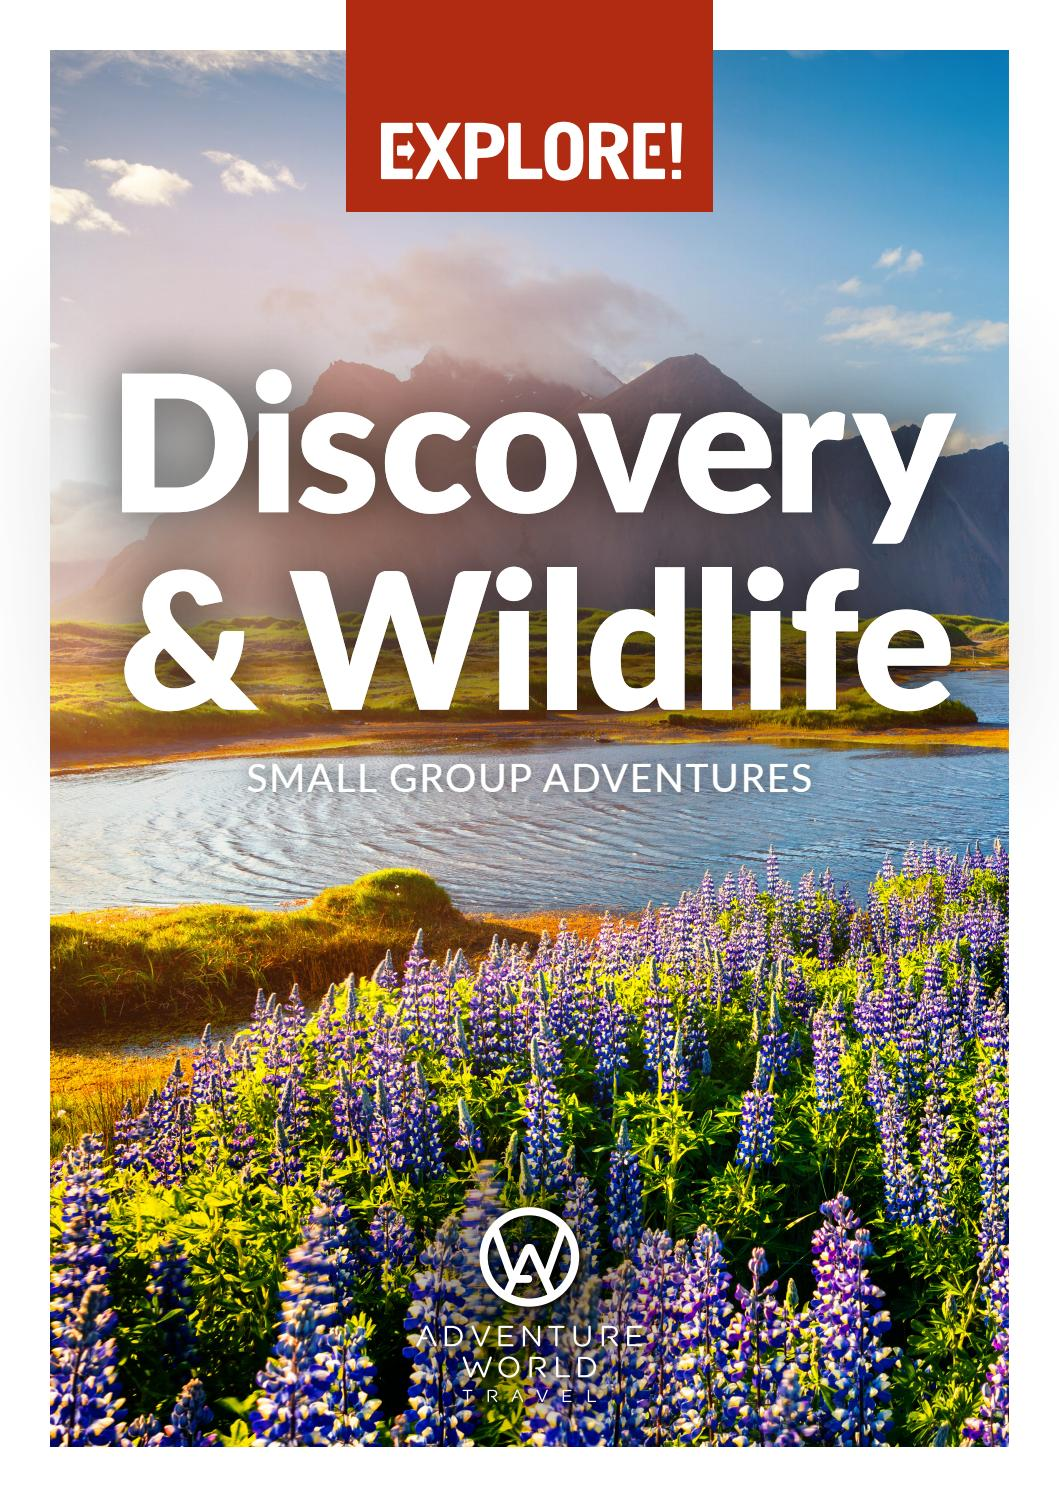 Explore Worldwide - Discovery & Wildlife